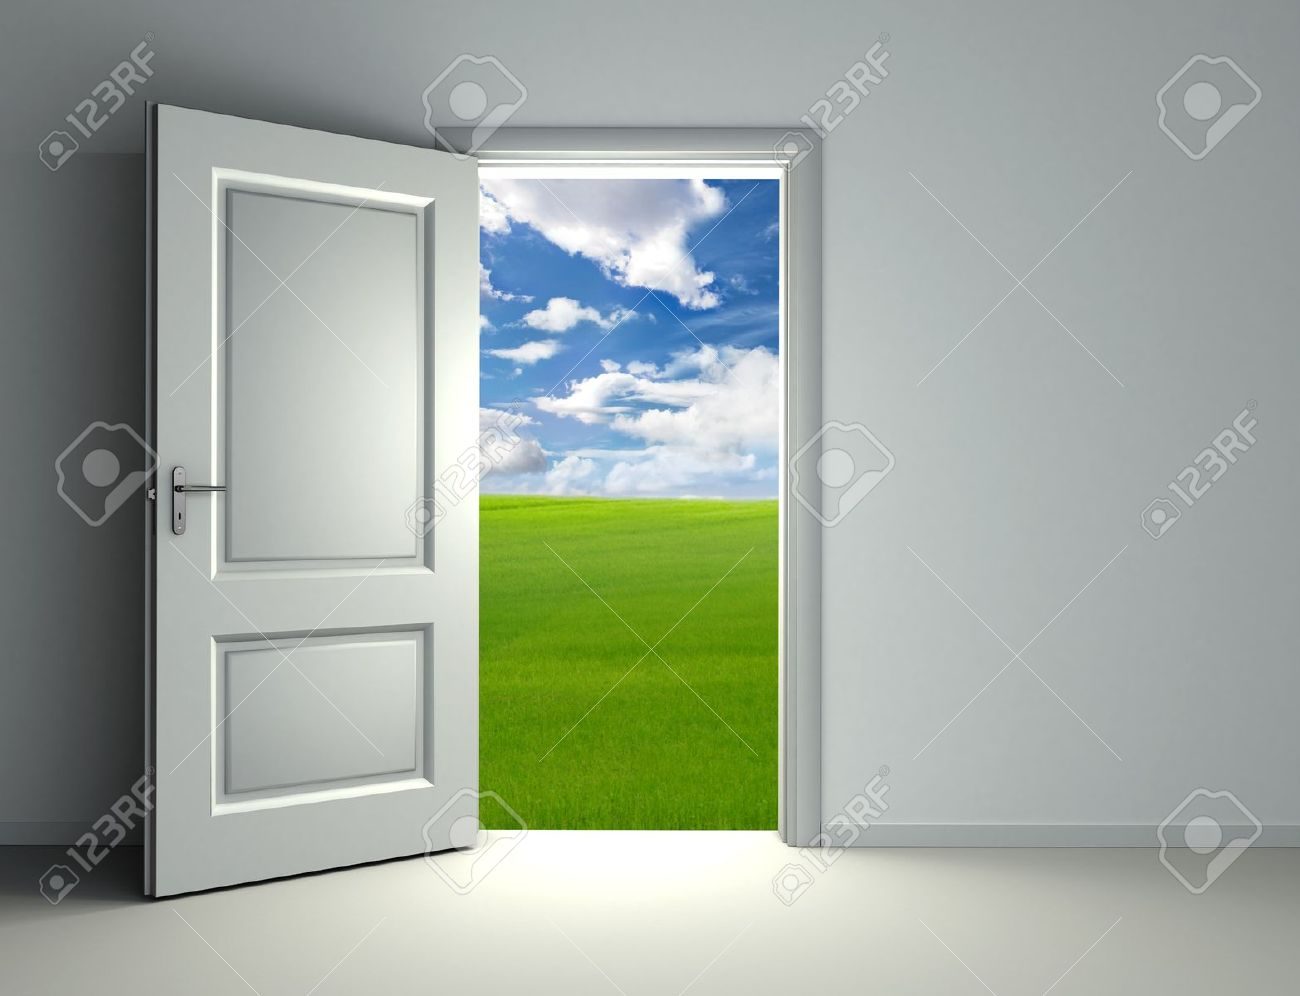 Stock Photo - white open door inside empty room with view to green field and cloud sky background : door view - pezcame.com